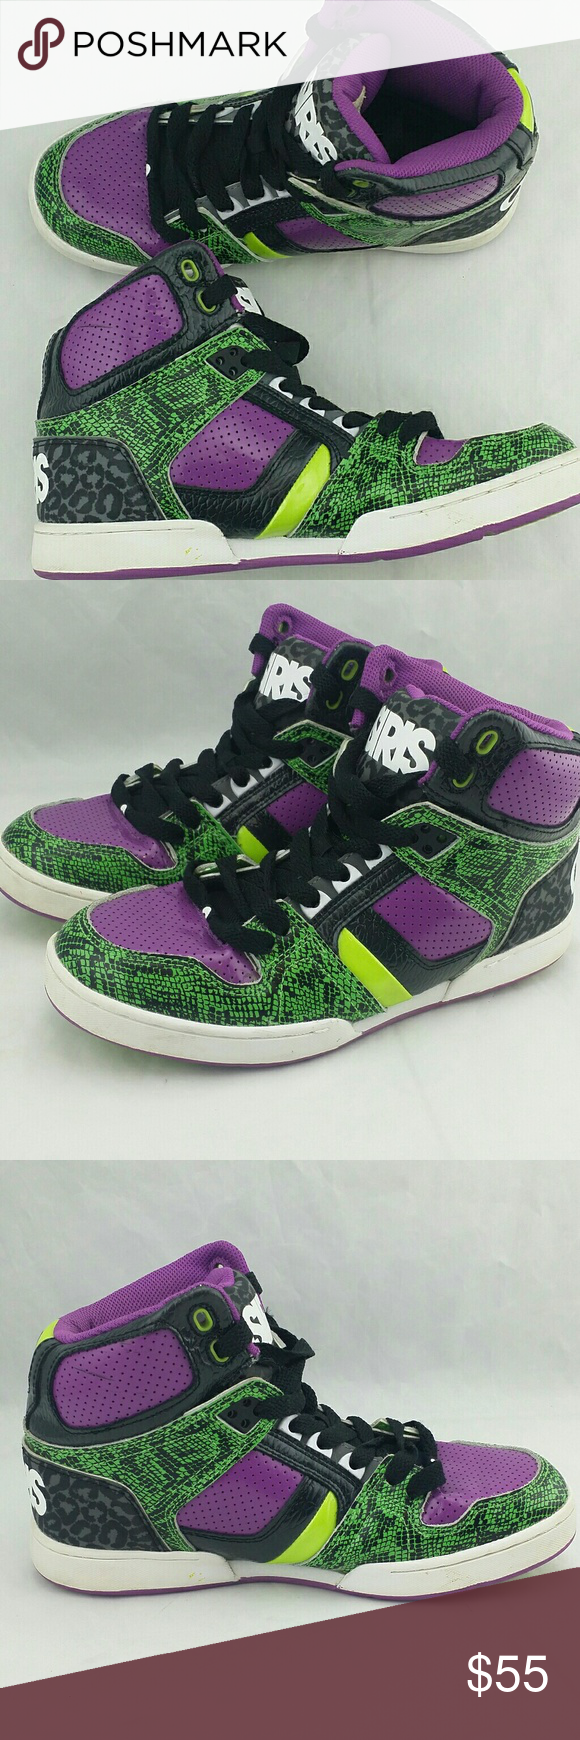 1a467c95cf84 Osiris Skateboard Shoes Joker Edition Green Purple Osiris Skateboard Shoes  Joker Edition Green Purple Women s size 5 Condition note  good condition